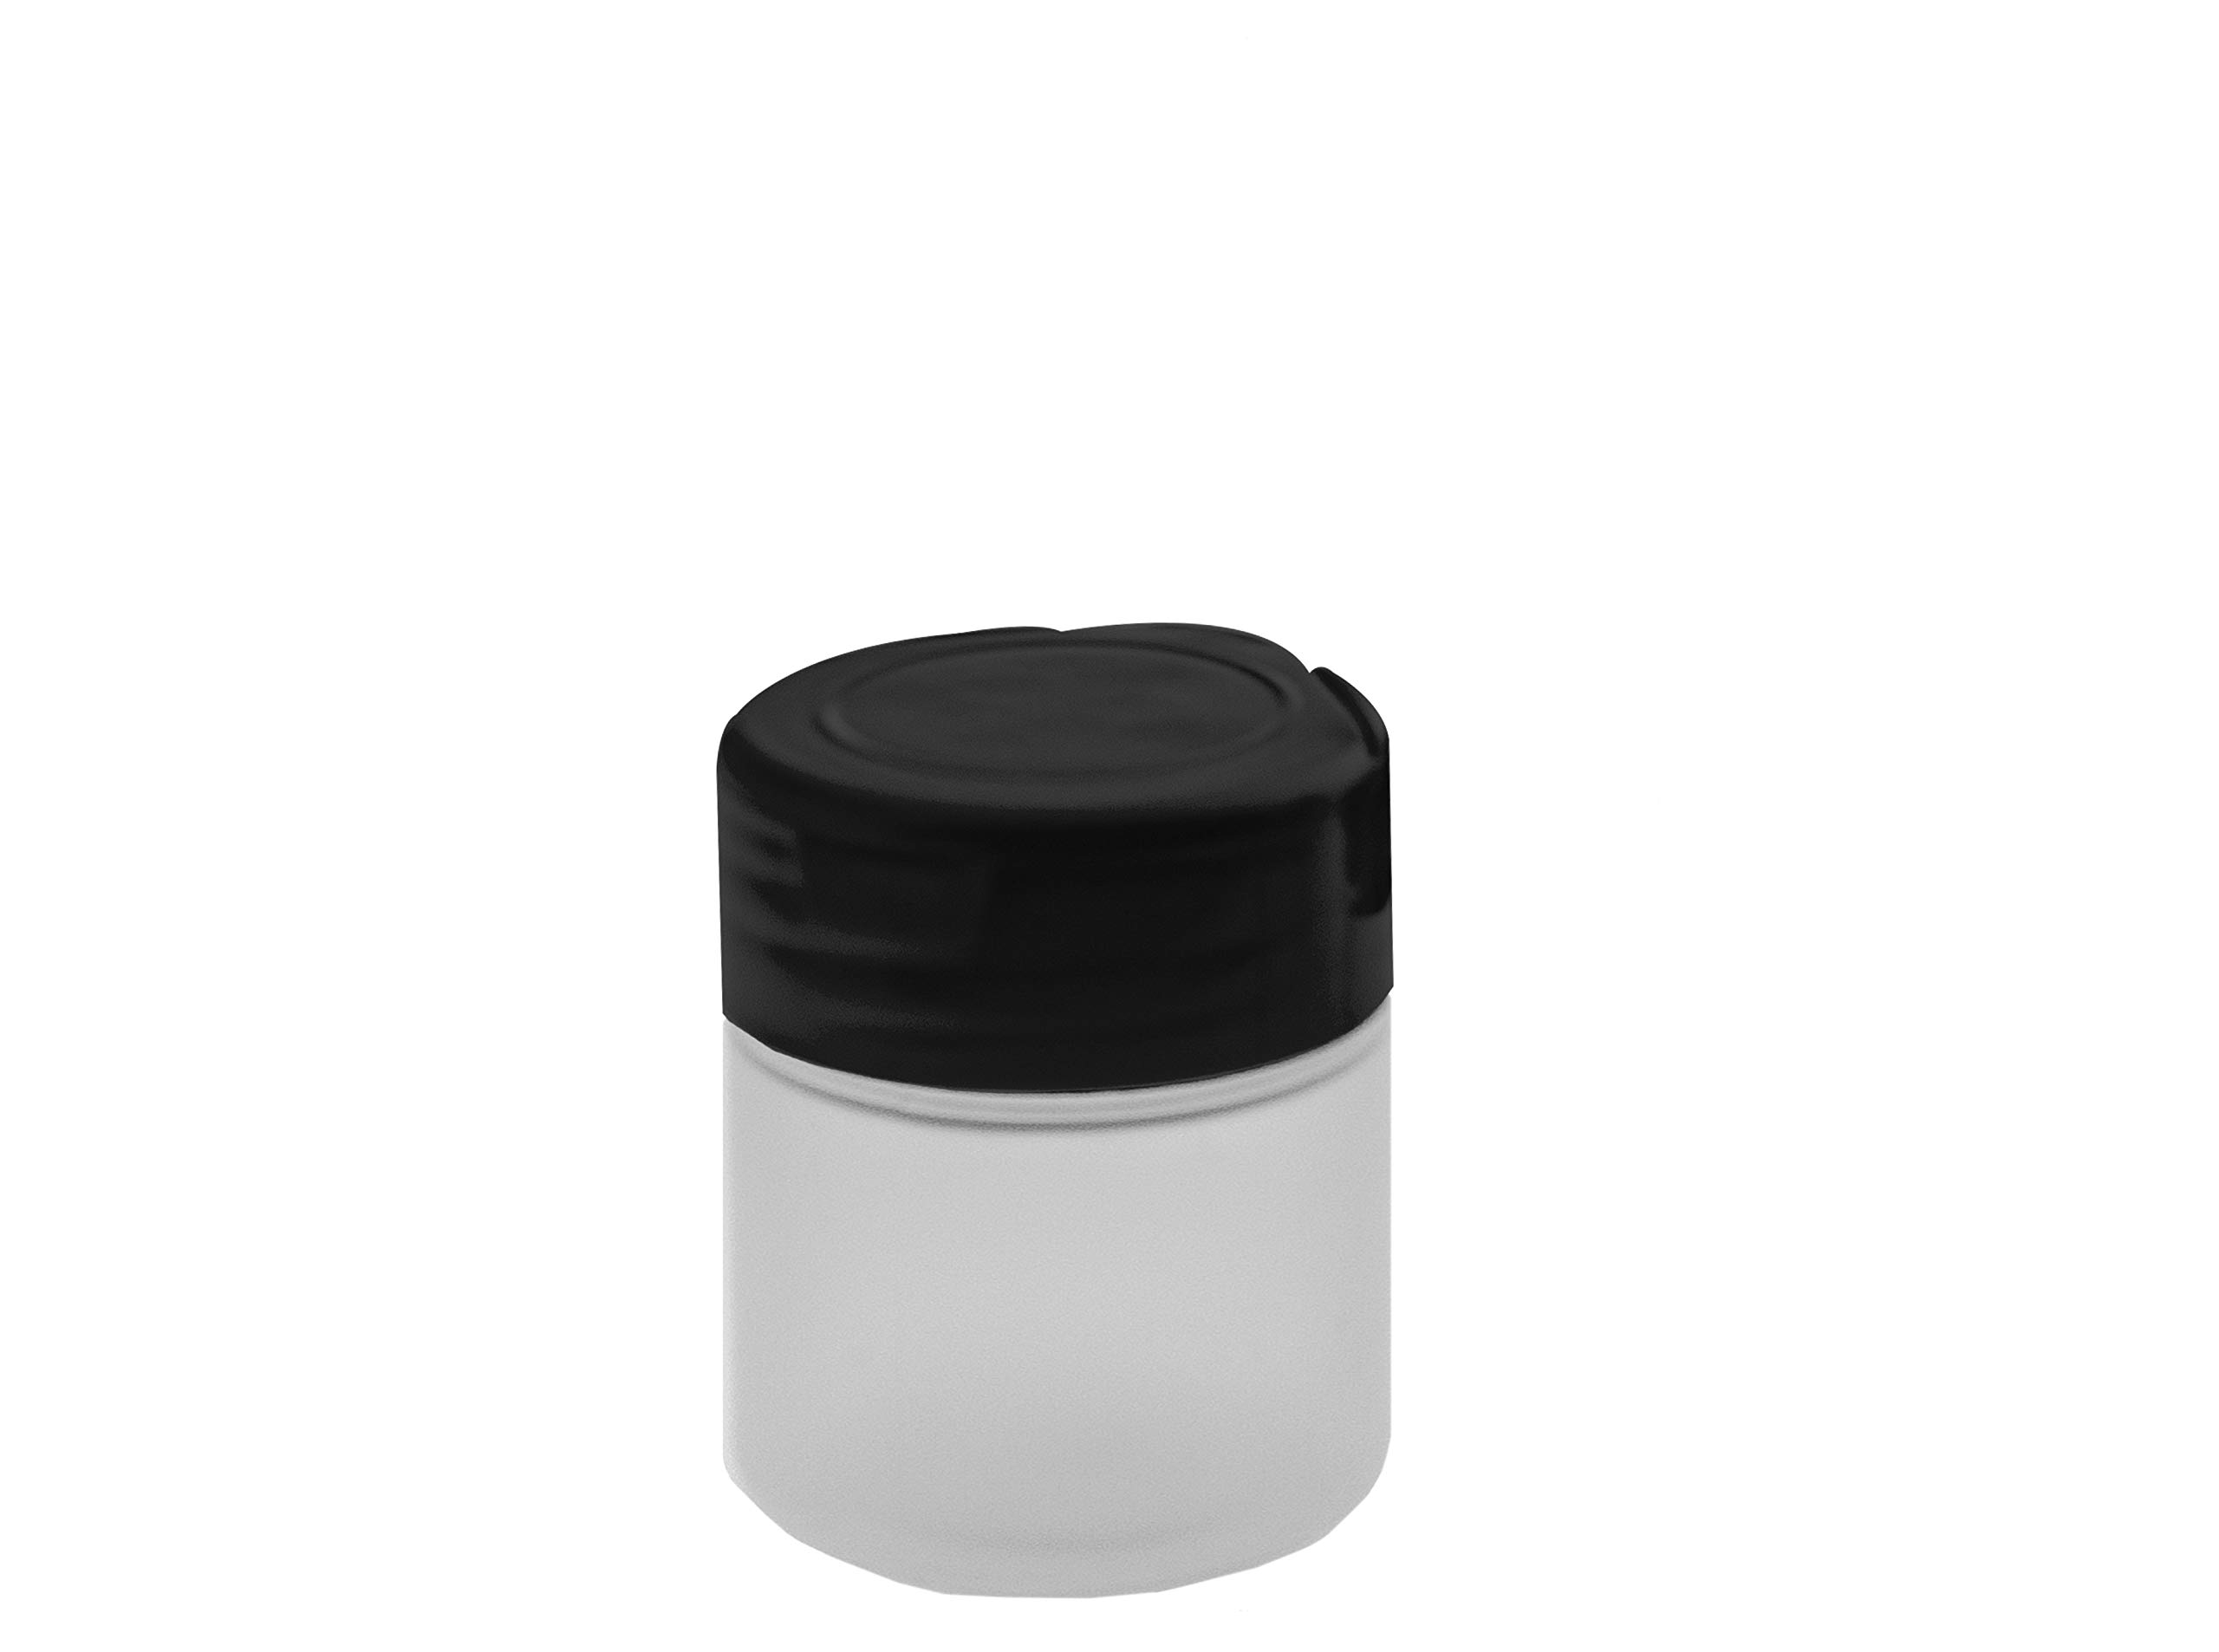 Marketing Holders Small 2 oz Plastic Spice Seasoning Salt Shaker Empty Bottle Dry Herb Container Food Jar for Spices with Black Lid Qty 4